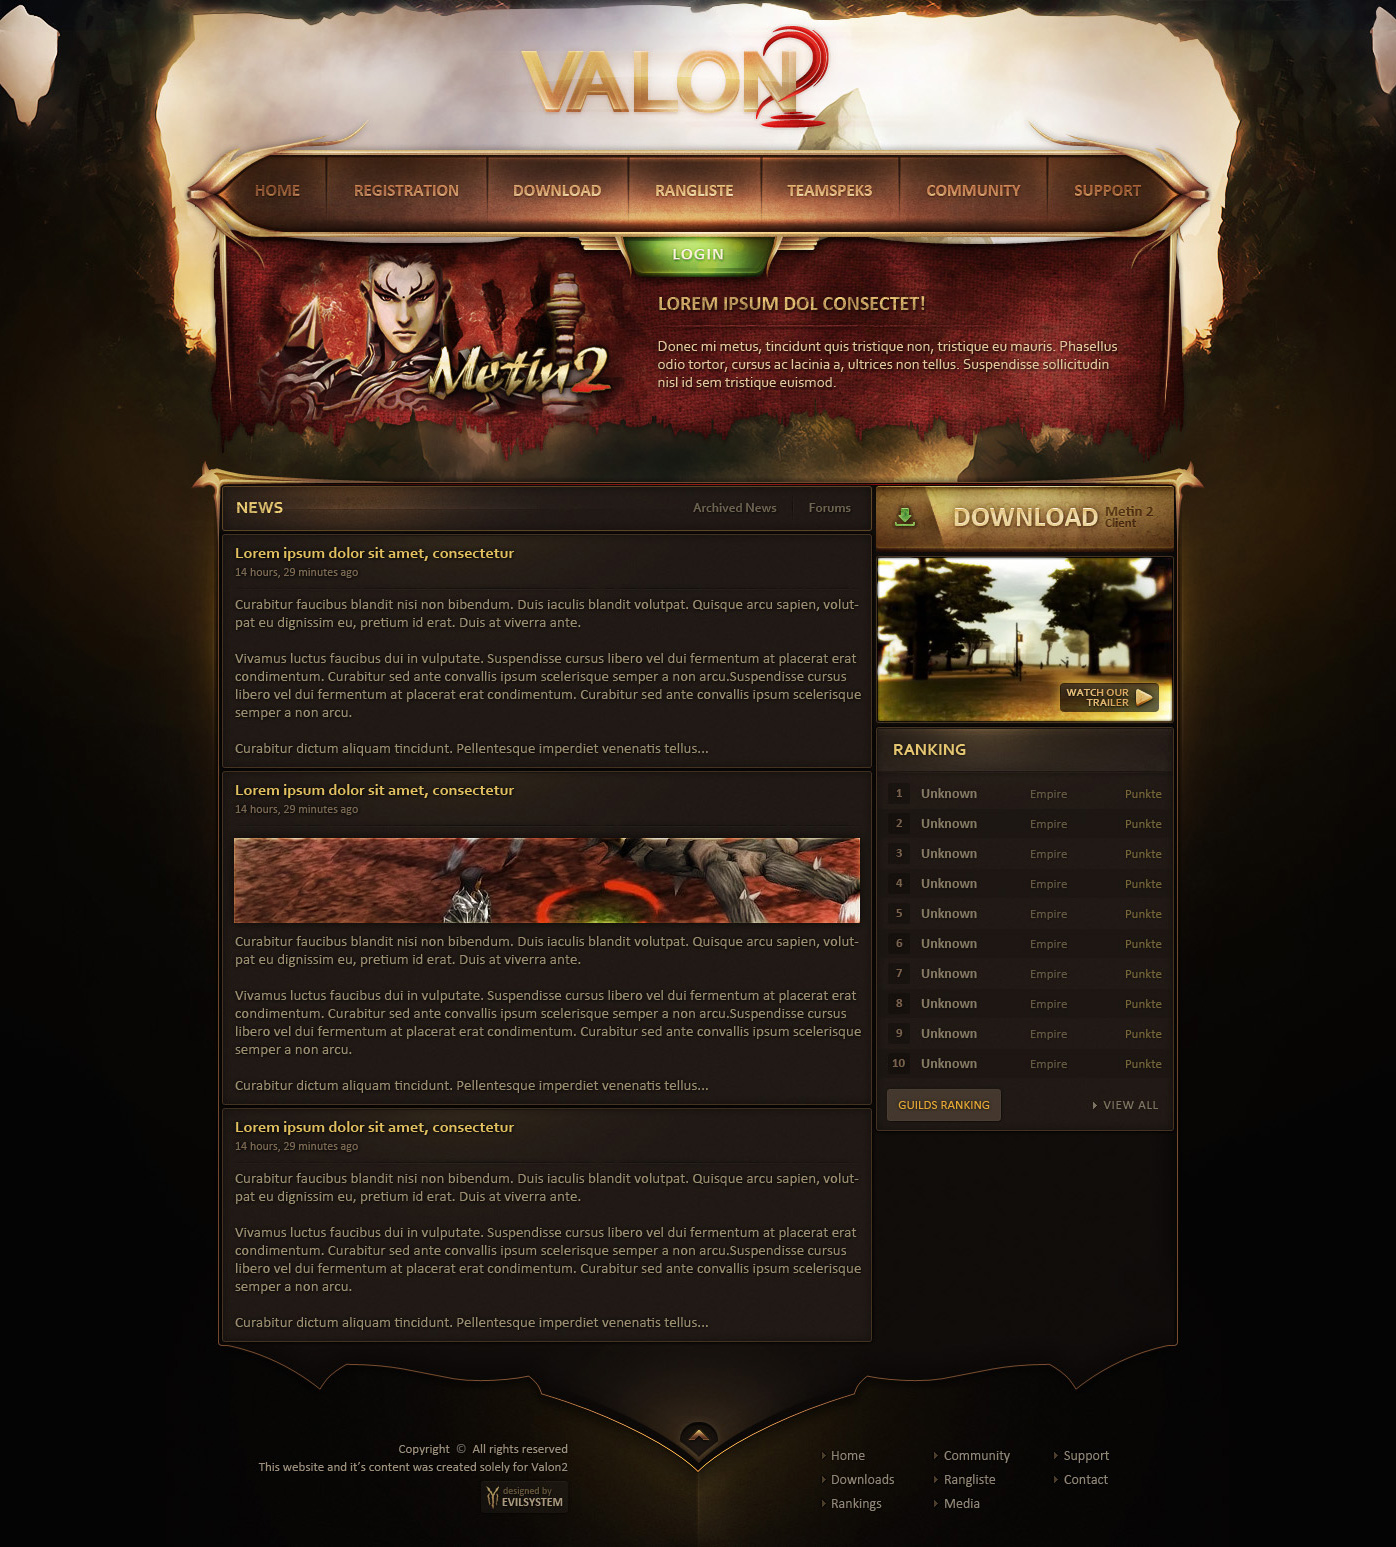 Valon2 - Metin2 Web Design by Evil-S